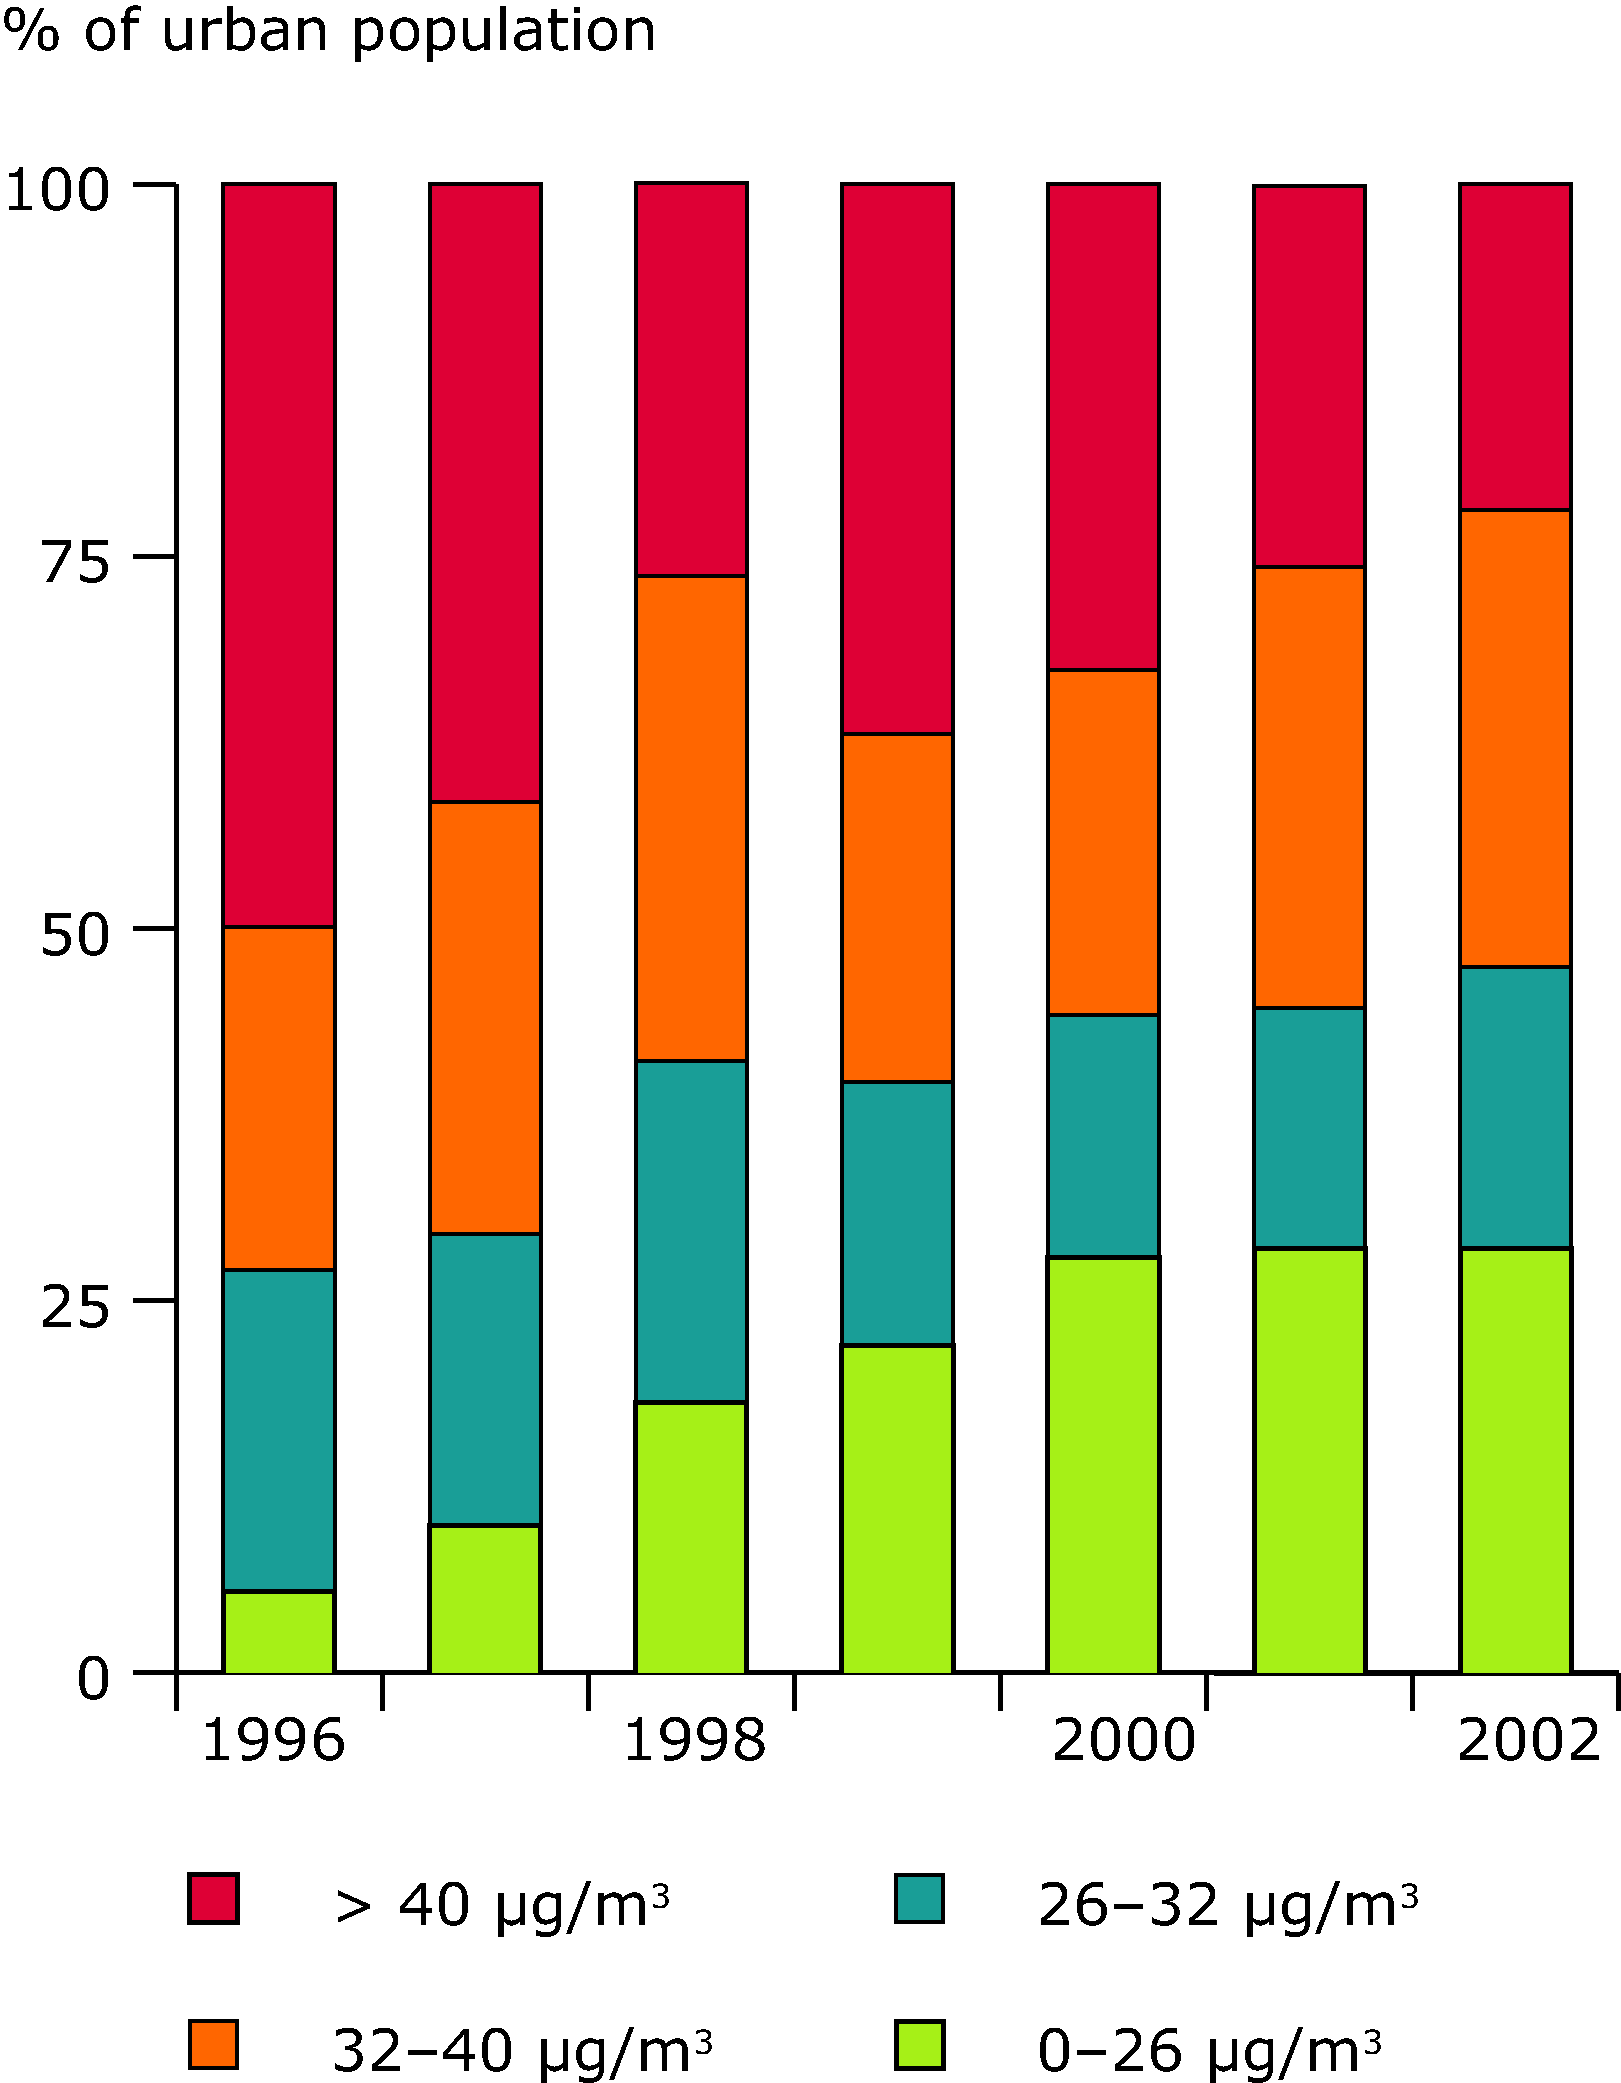 Exceedance of air quality limit values of NO2 in urban areas (EEA member countries), 1996-2002